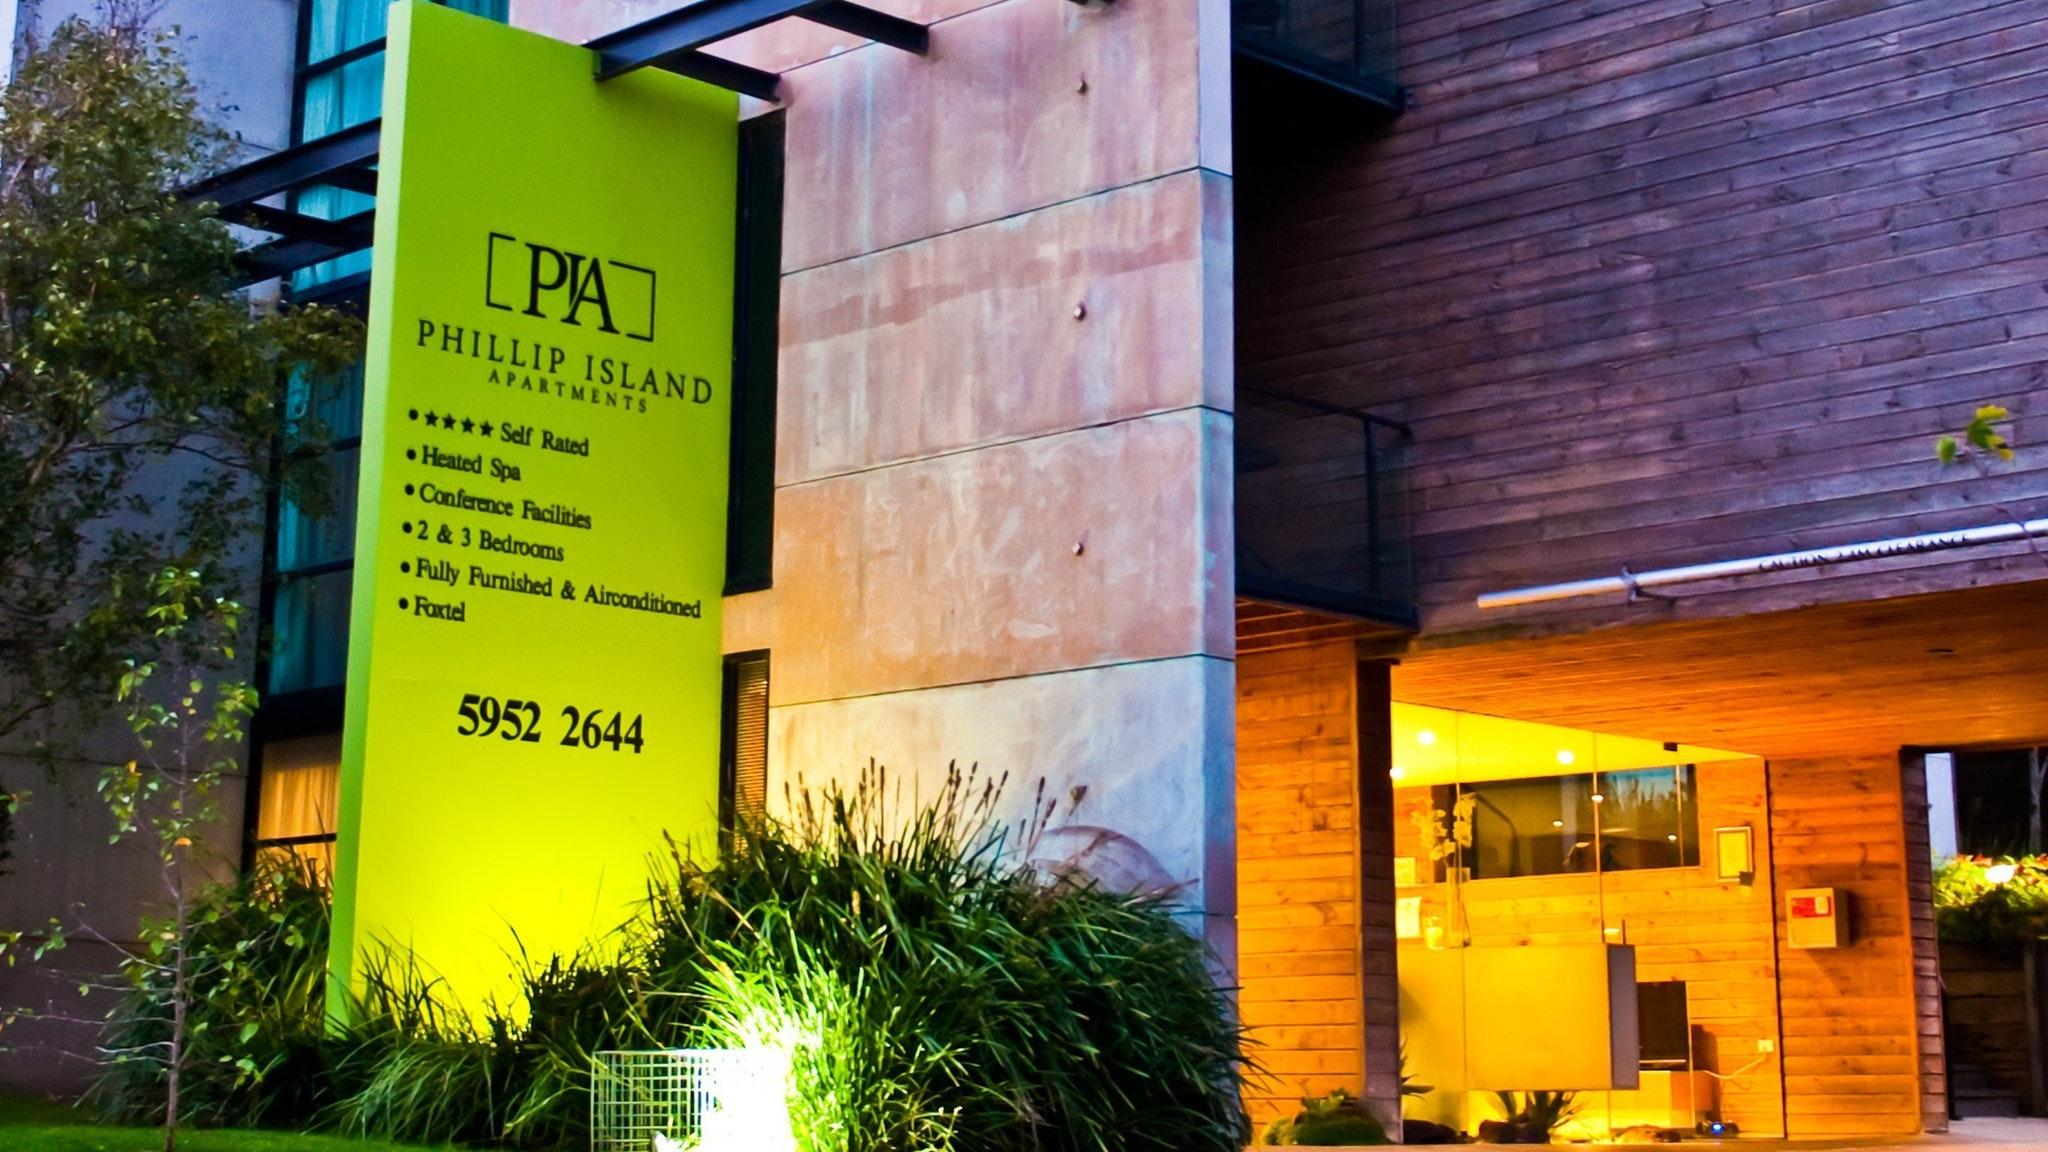 Entrance of Phillip Island Apartments